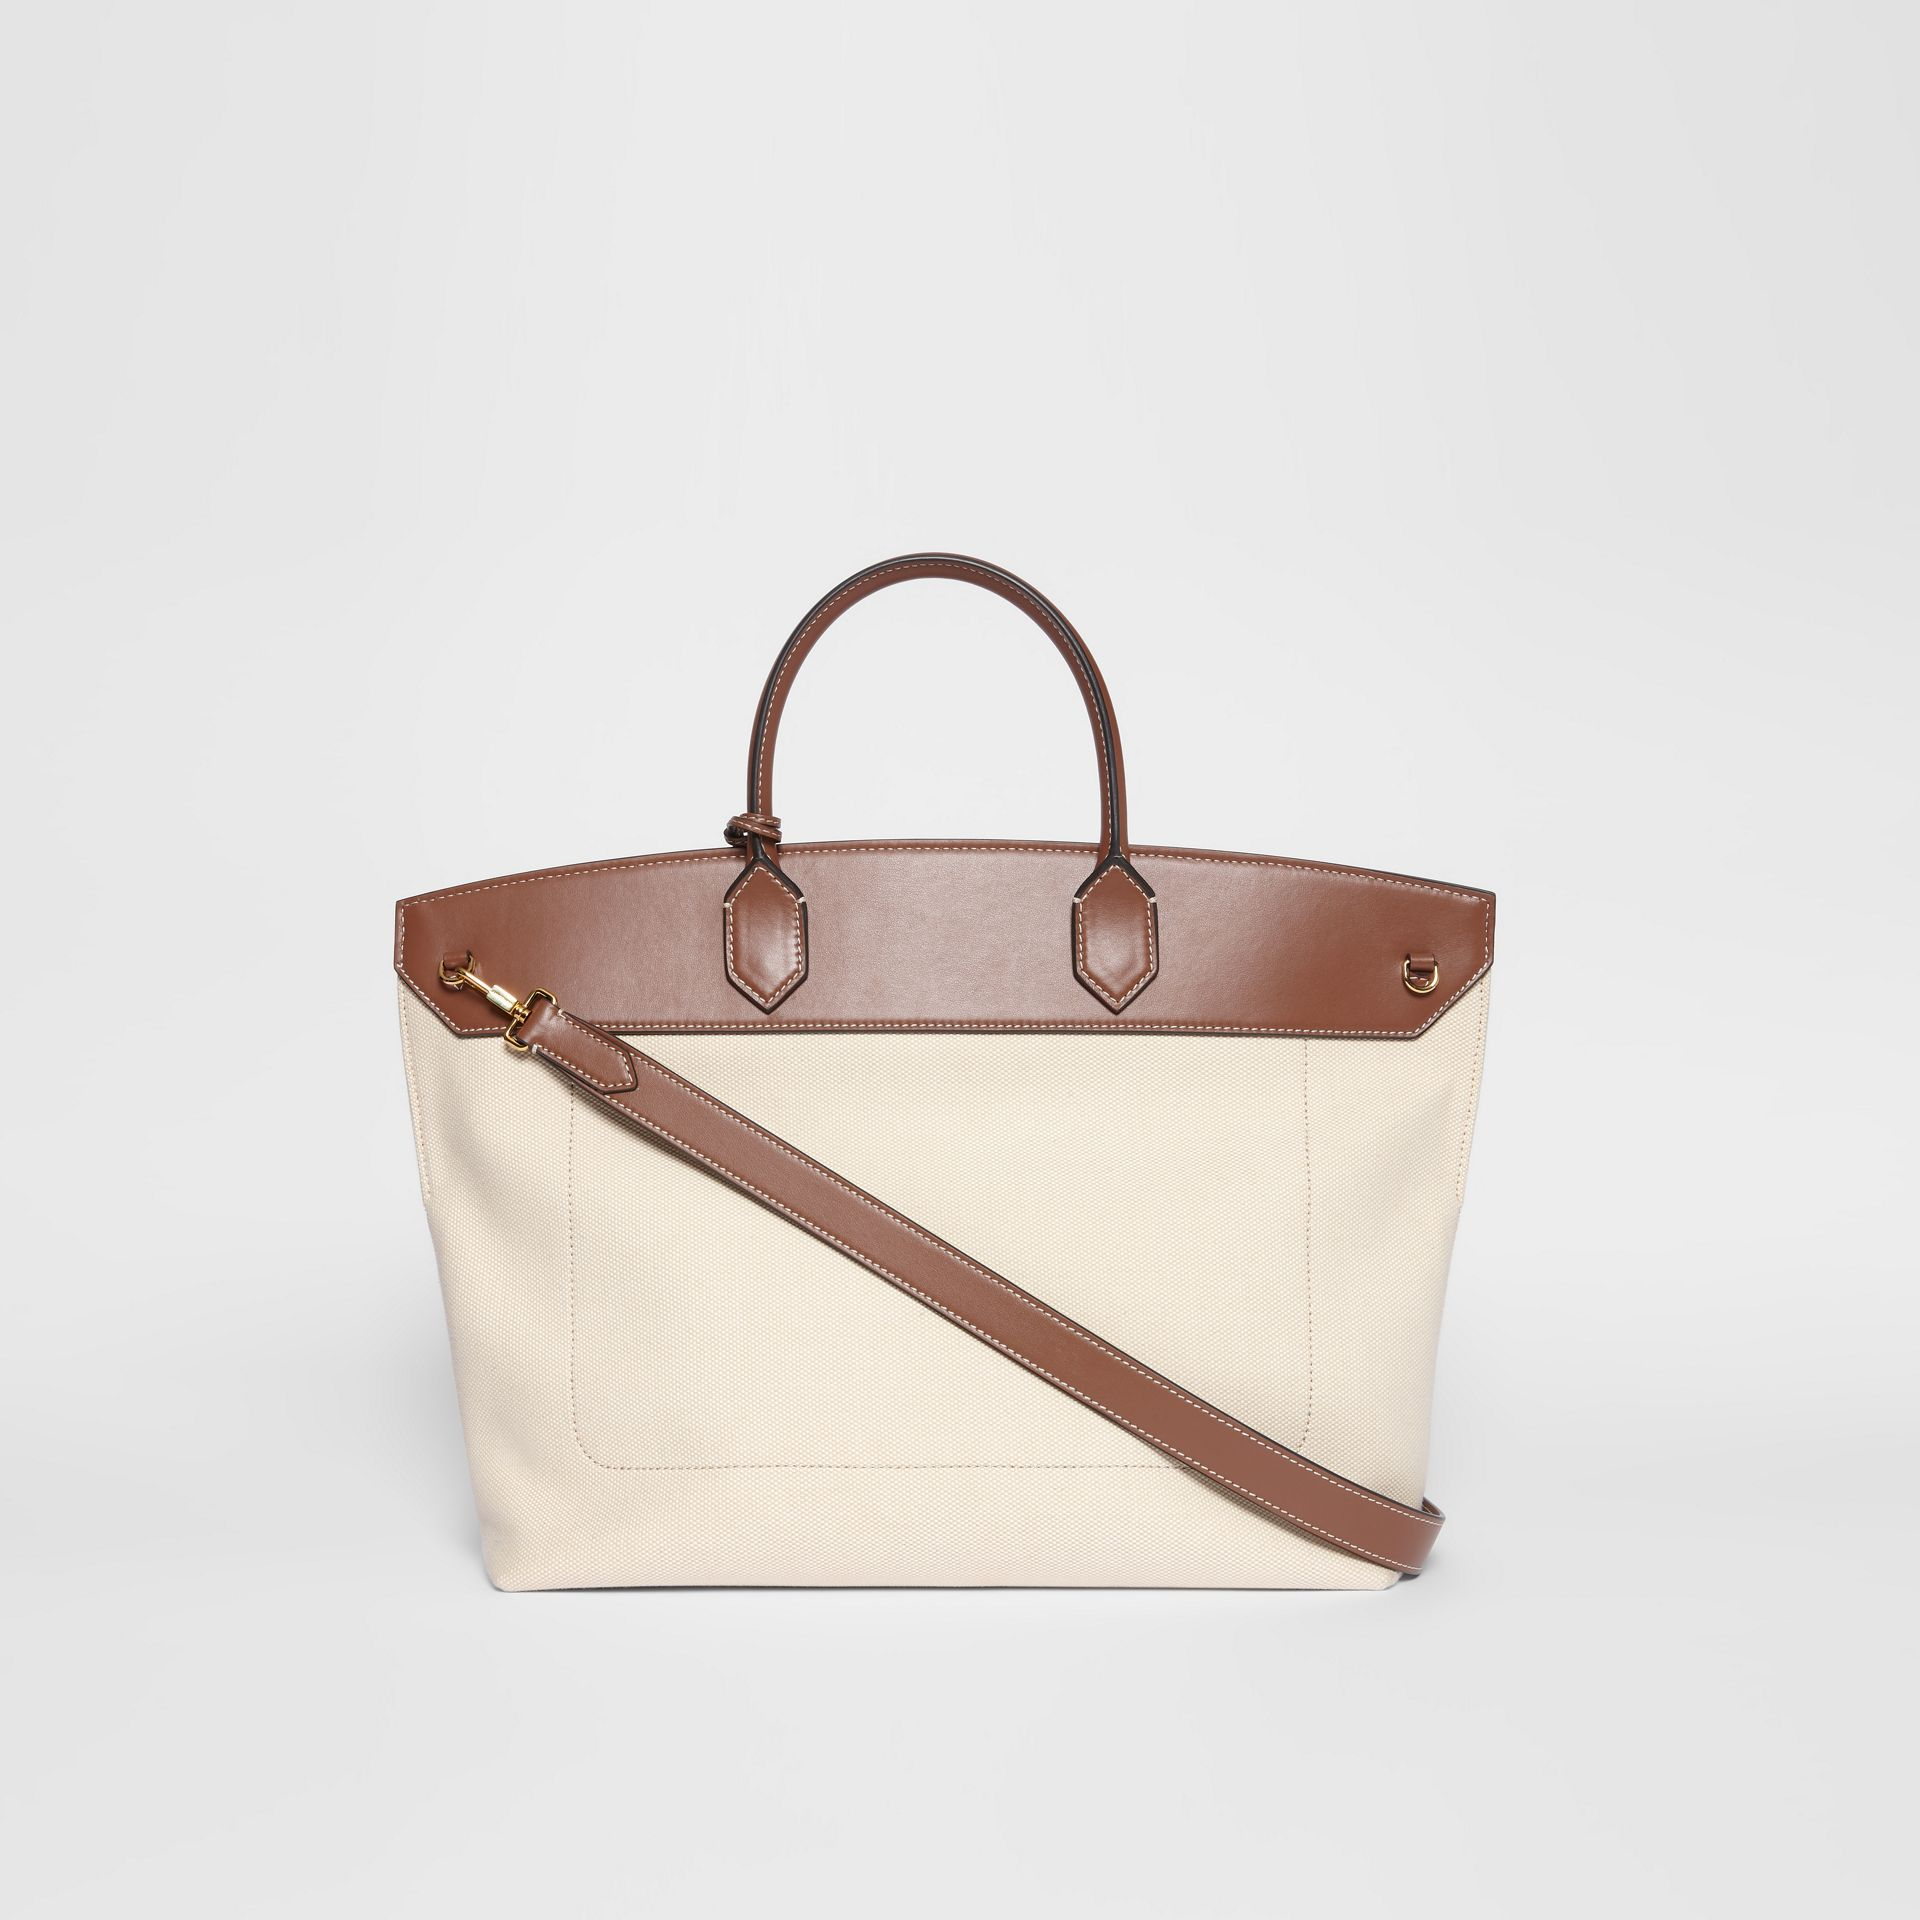 Cotton Canvas and Leather Society Top Handle Bag in Natural/malt Brown - Women | Burberry Australia - gallery image 7